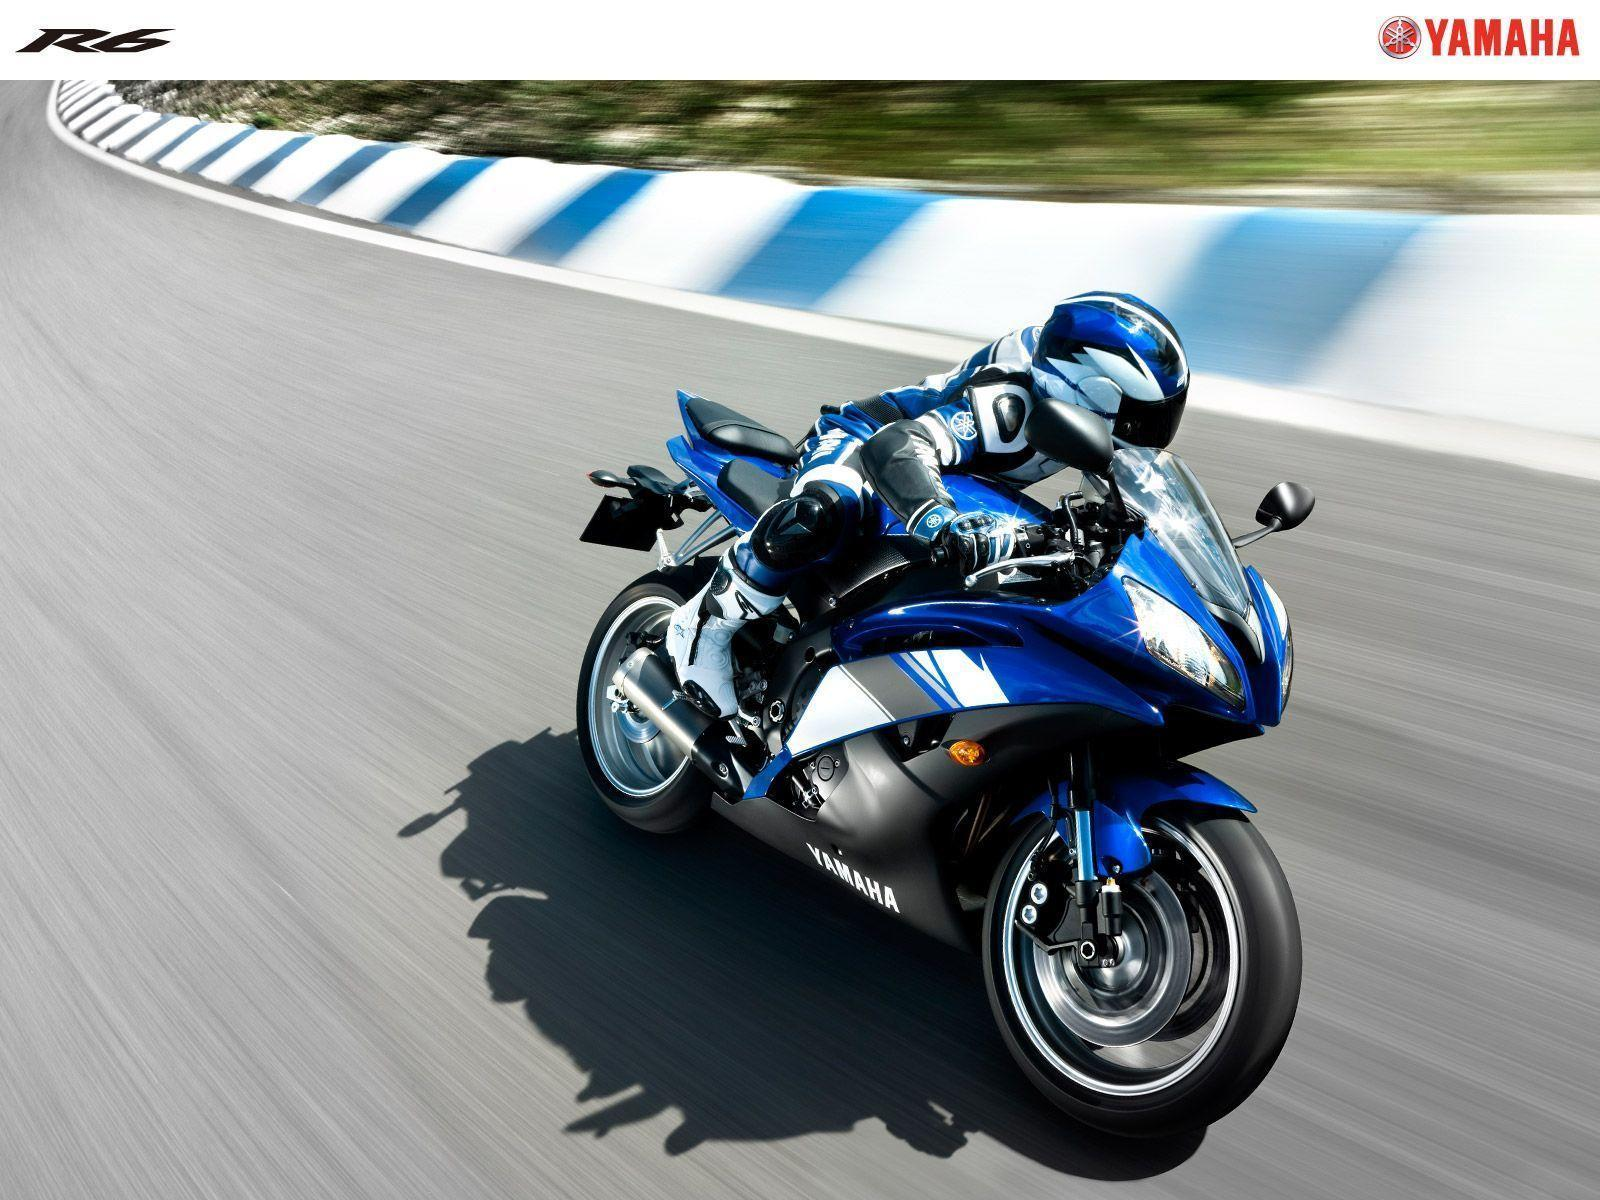 HD Yamaha Wallpapers & Backgrounds Image For Download